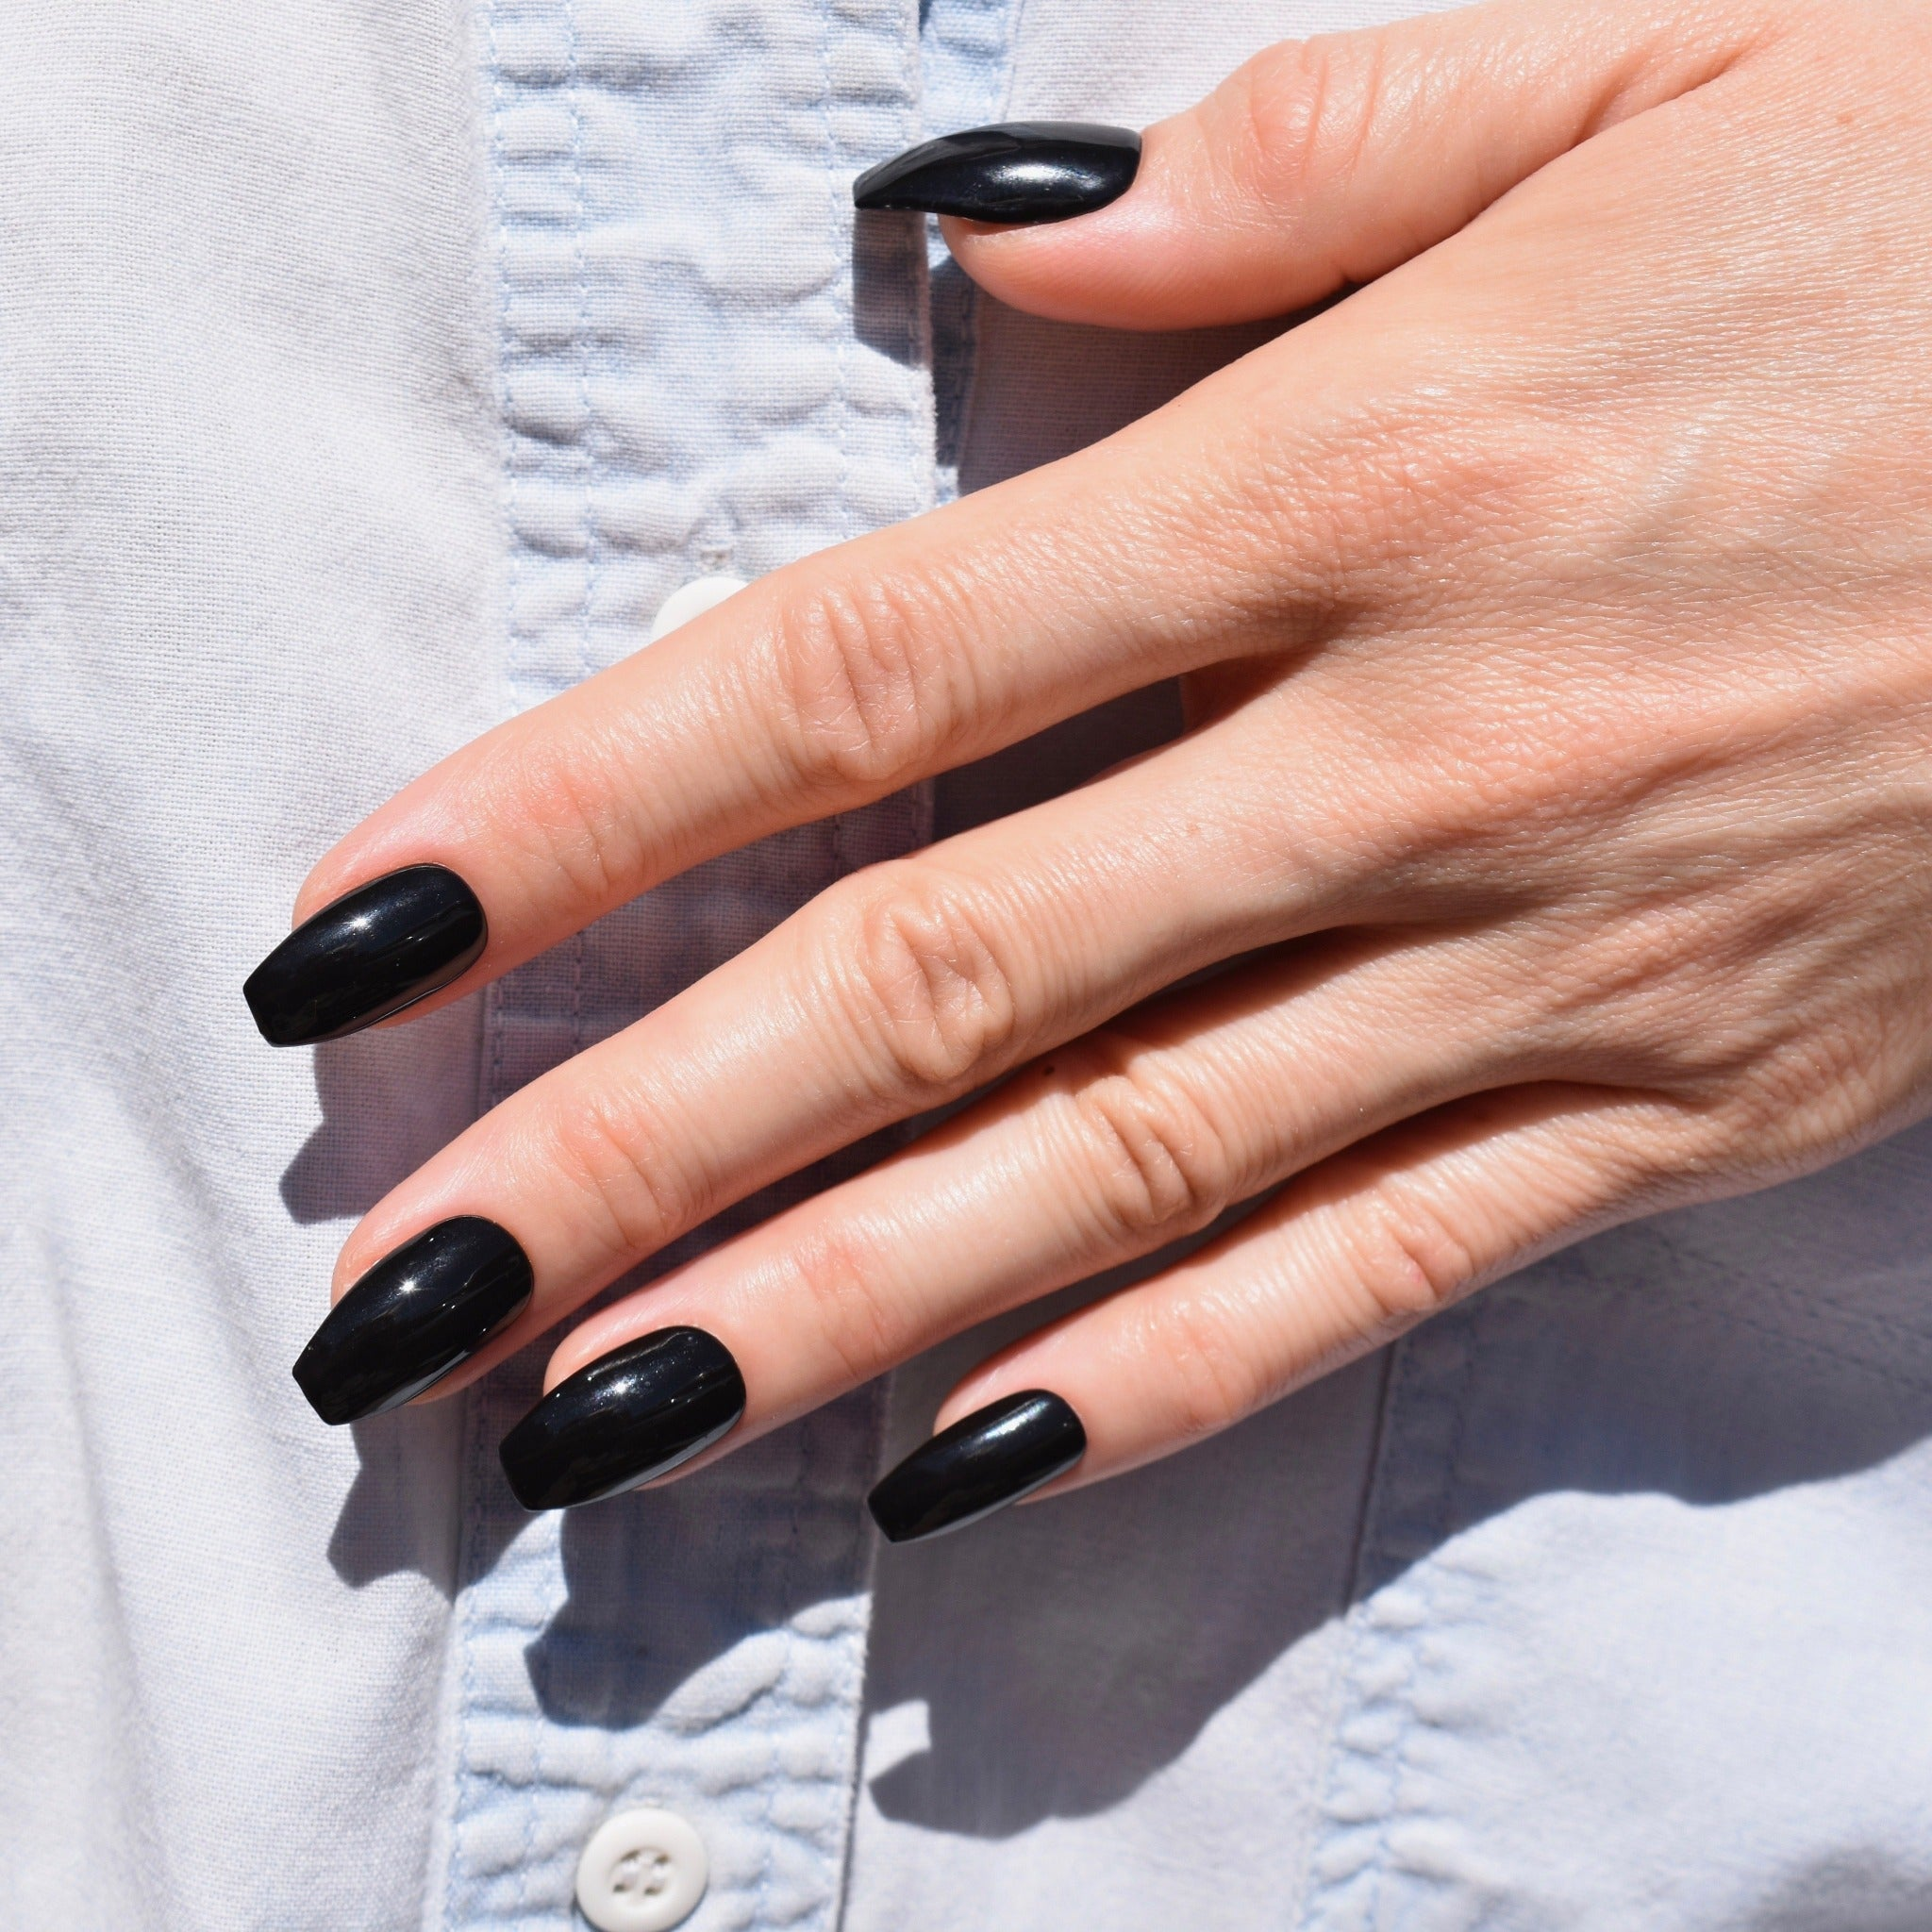 Gel polish hand painted press on nails with nail art on one had.  The Coffin shaped nails are in a black gloss finish.  The models hand rests over a pale denim shirt with white buttons for an effortlessly stylish look.